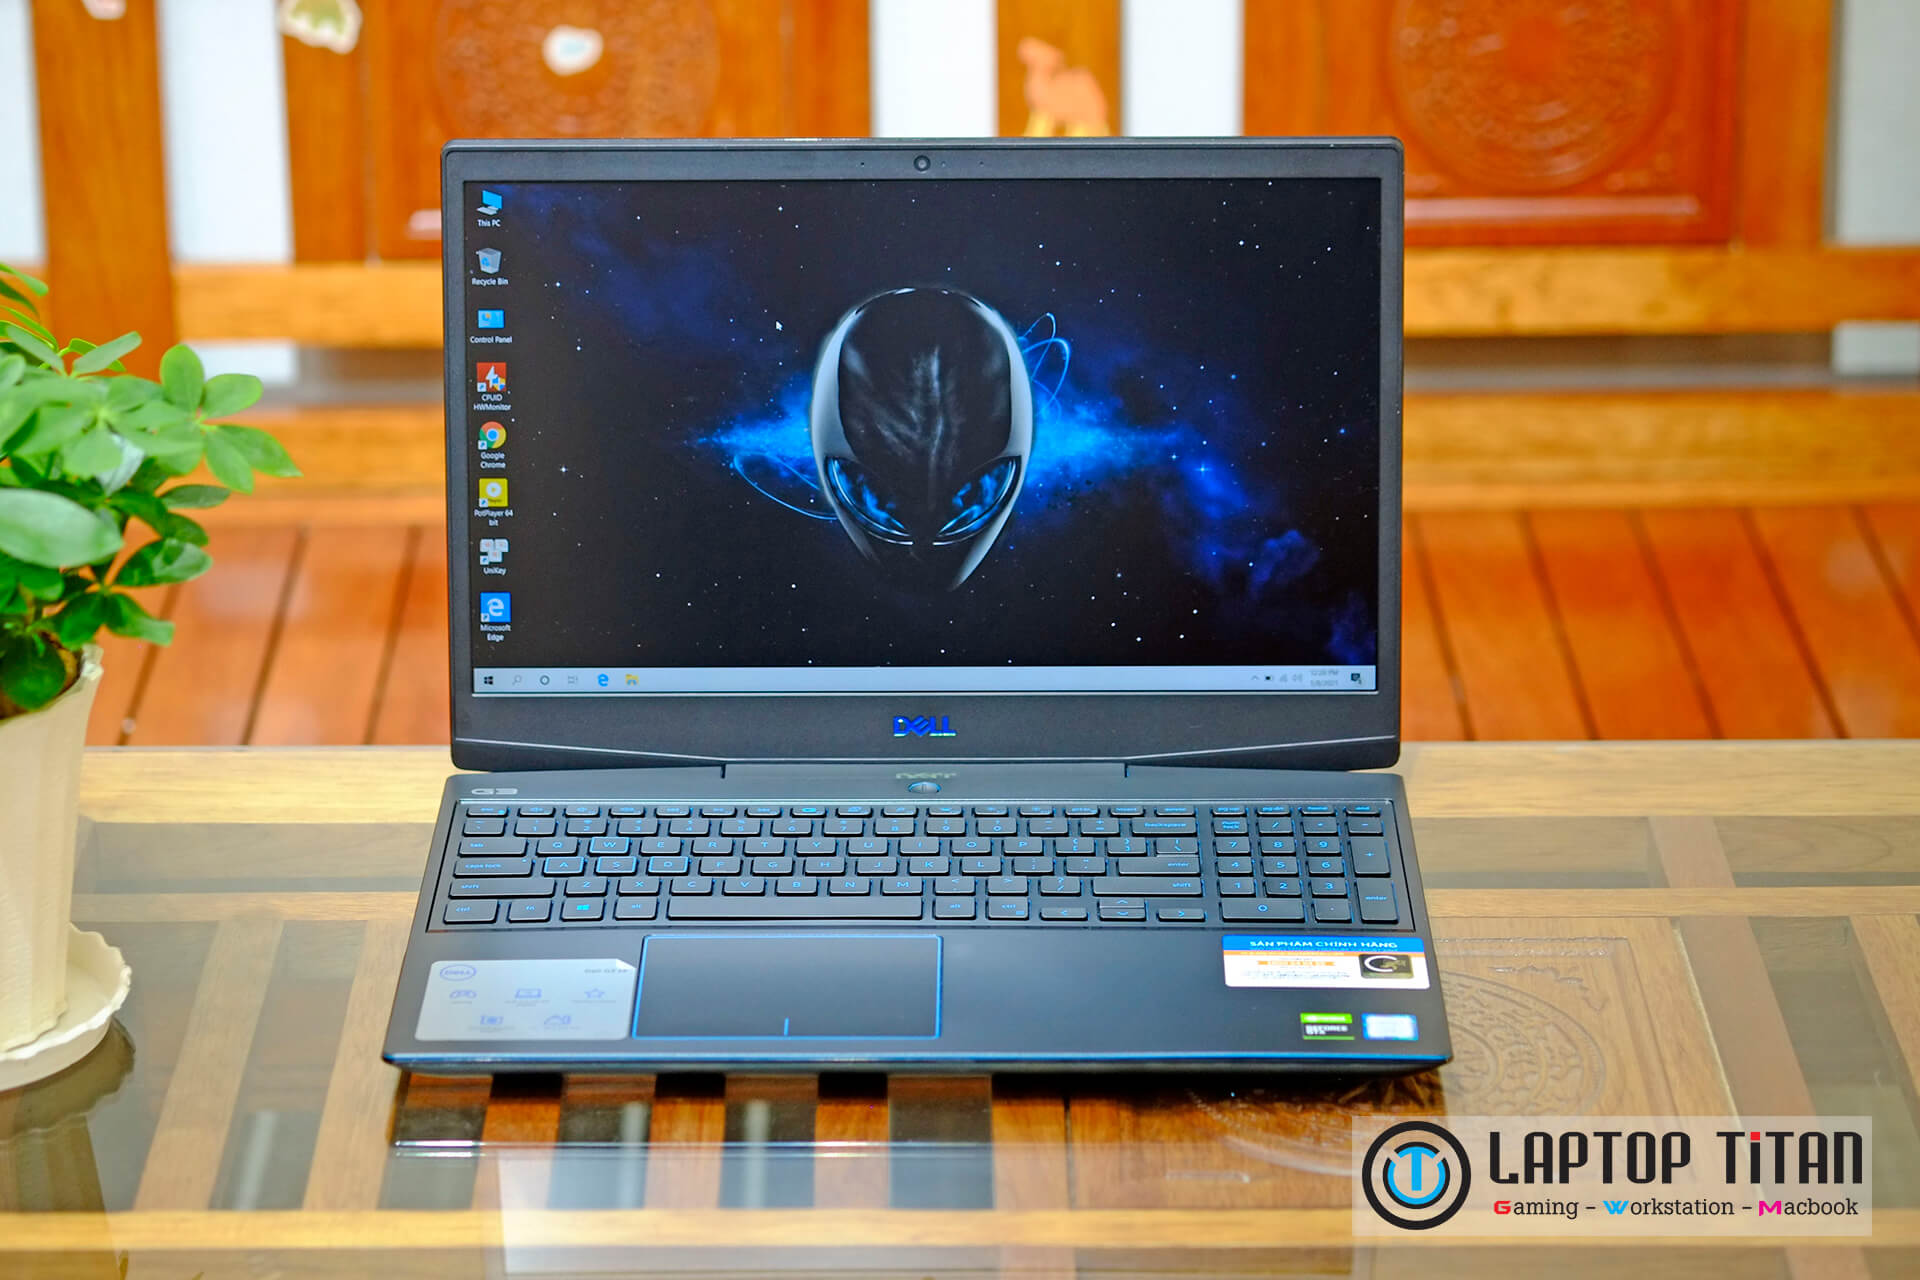 Dell G3 3590 laptoptitan 01